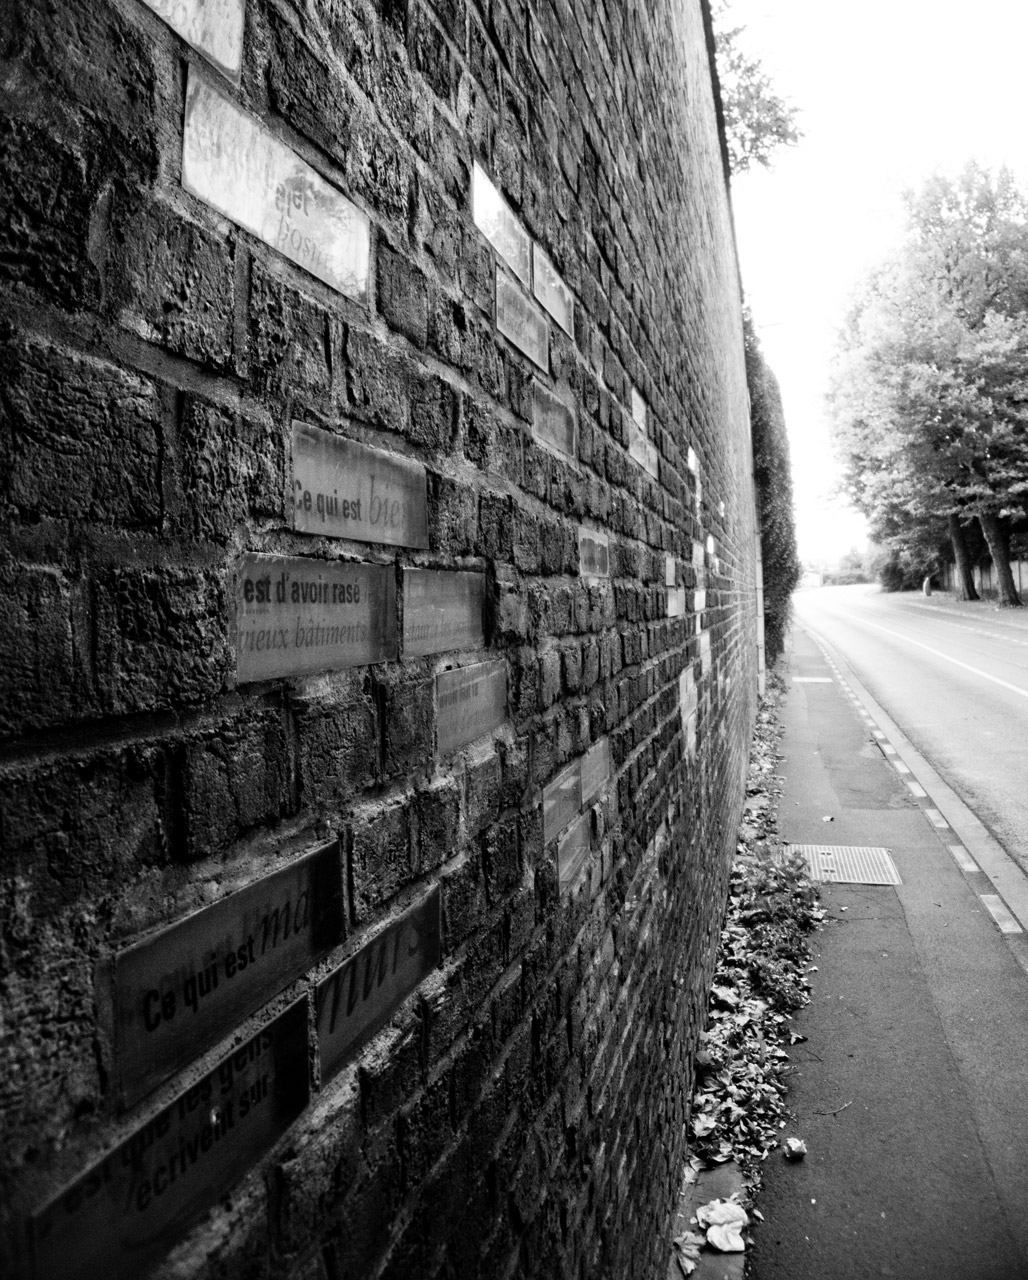 Photo: Another Brick in the Wall